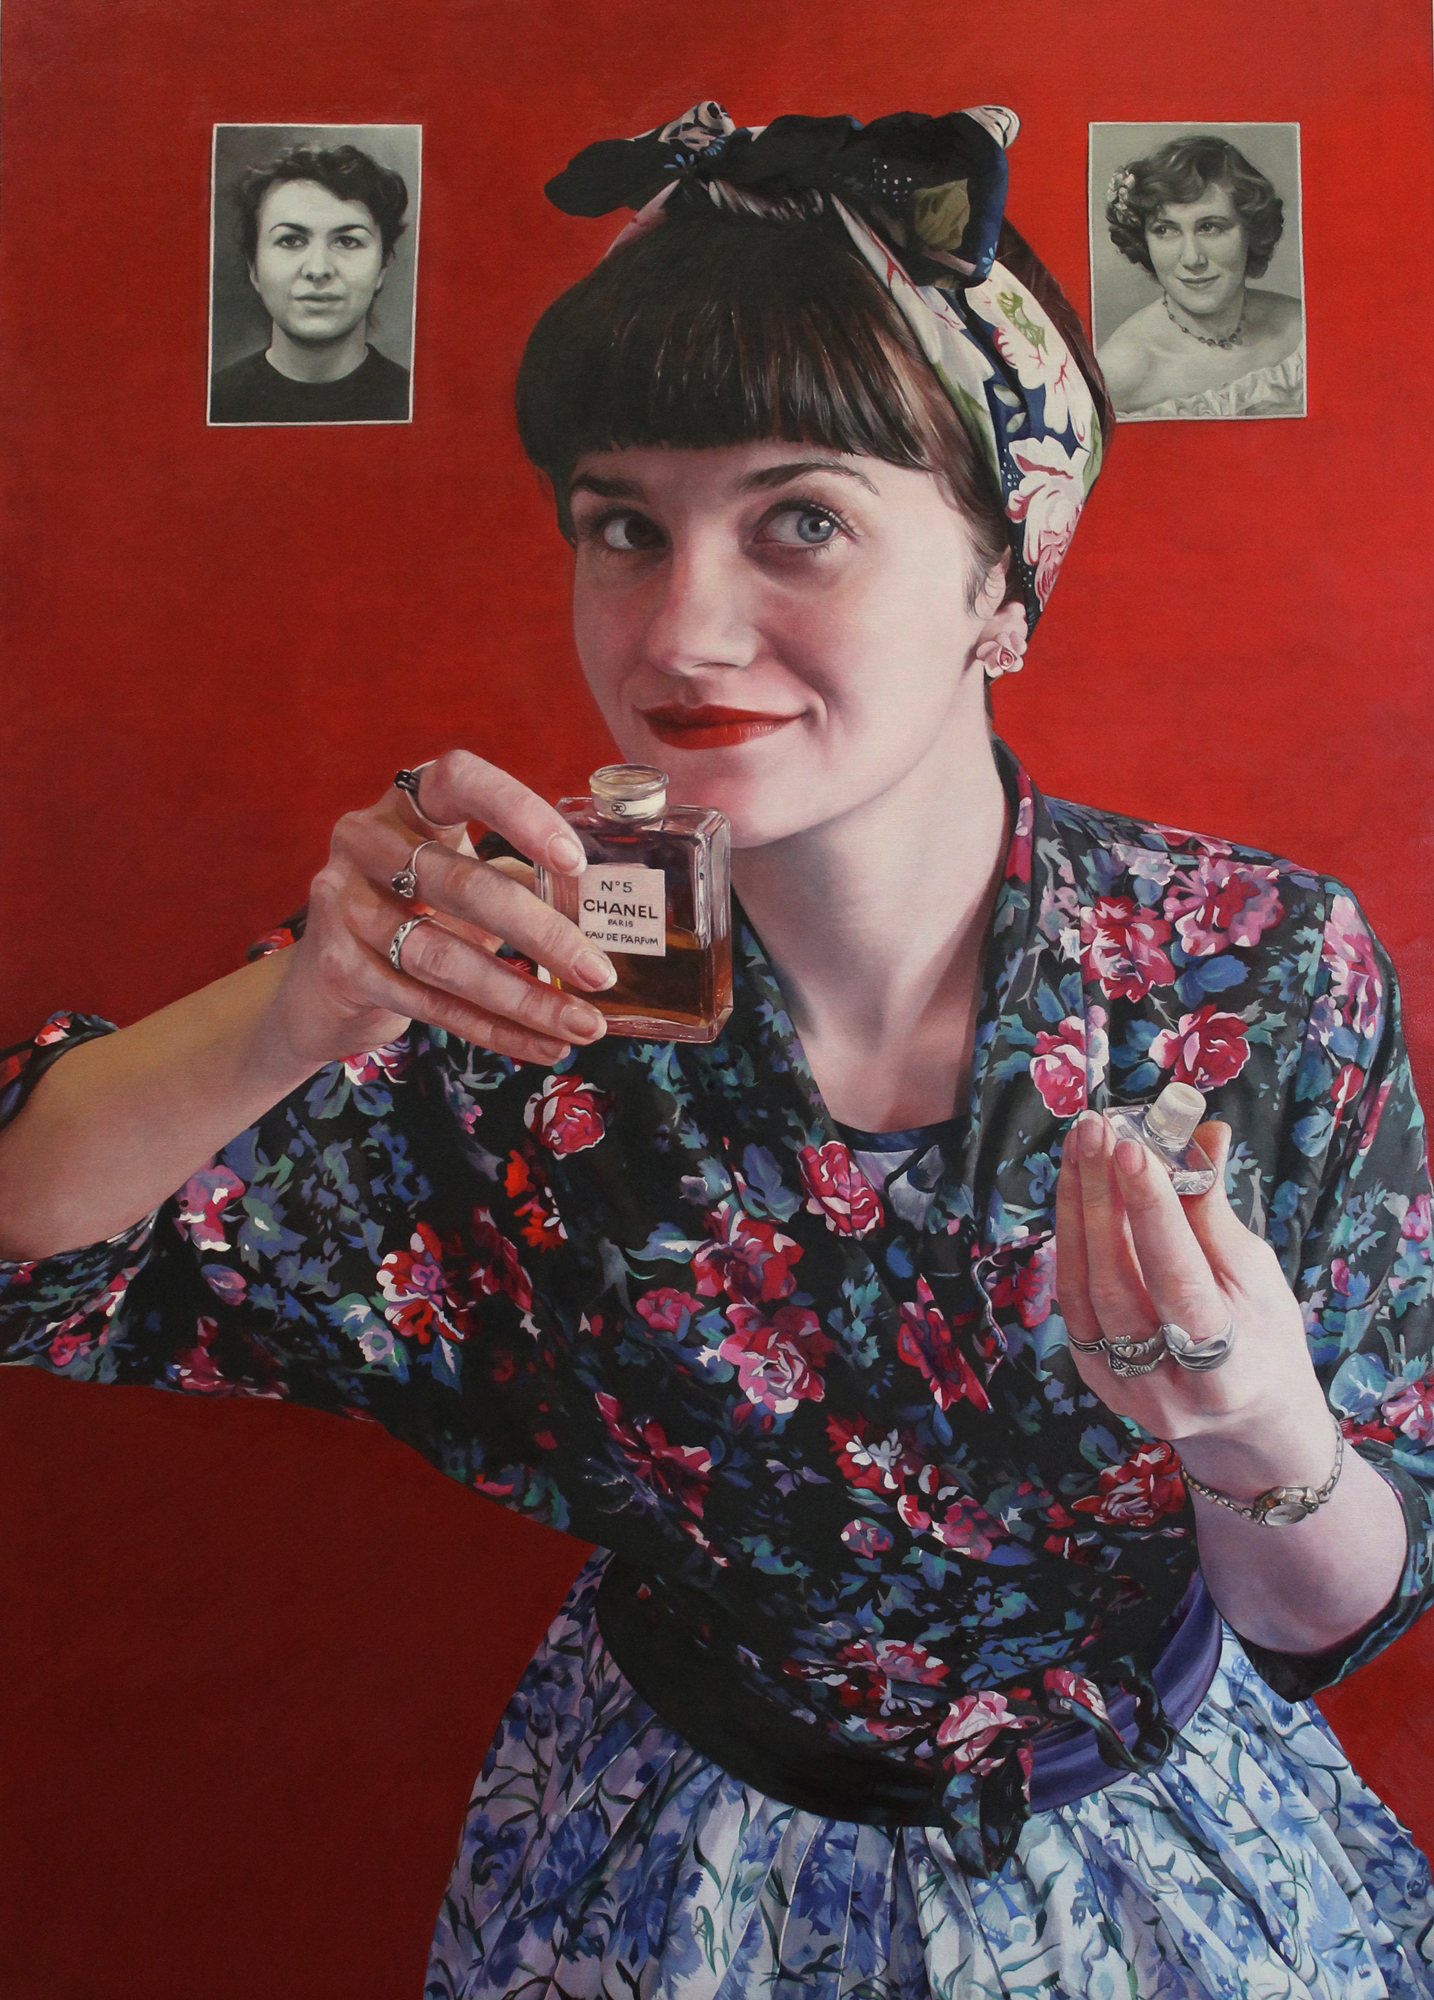 Sarah Hope, Memory's Scent, Oil on board, 70cm x 50cm x 3cm